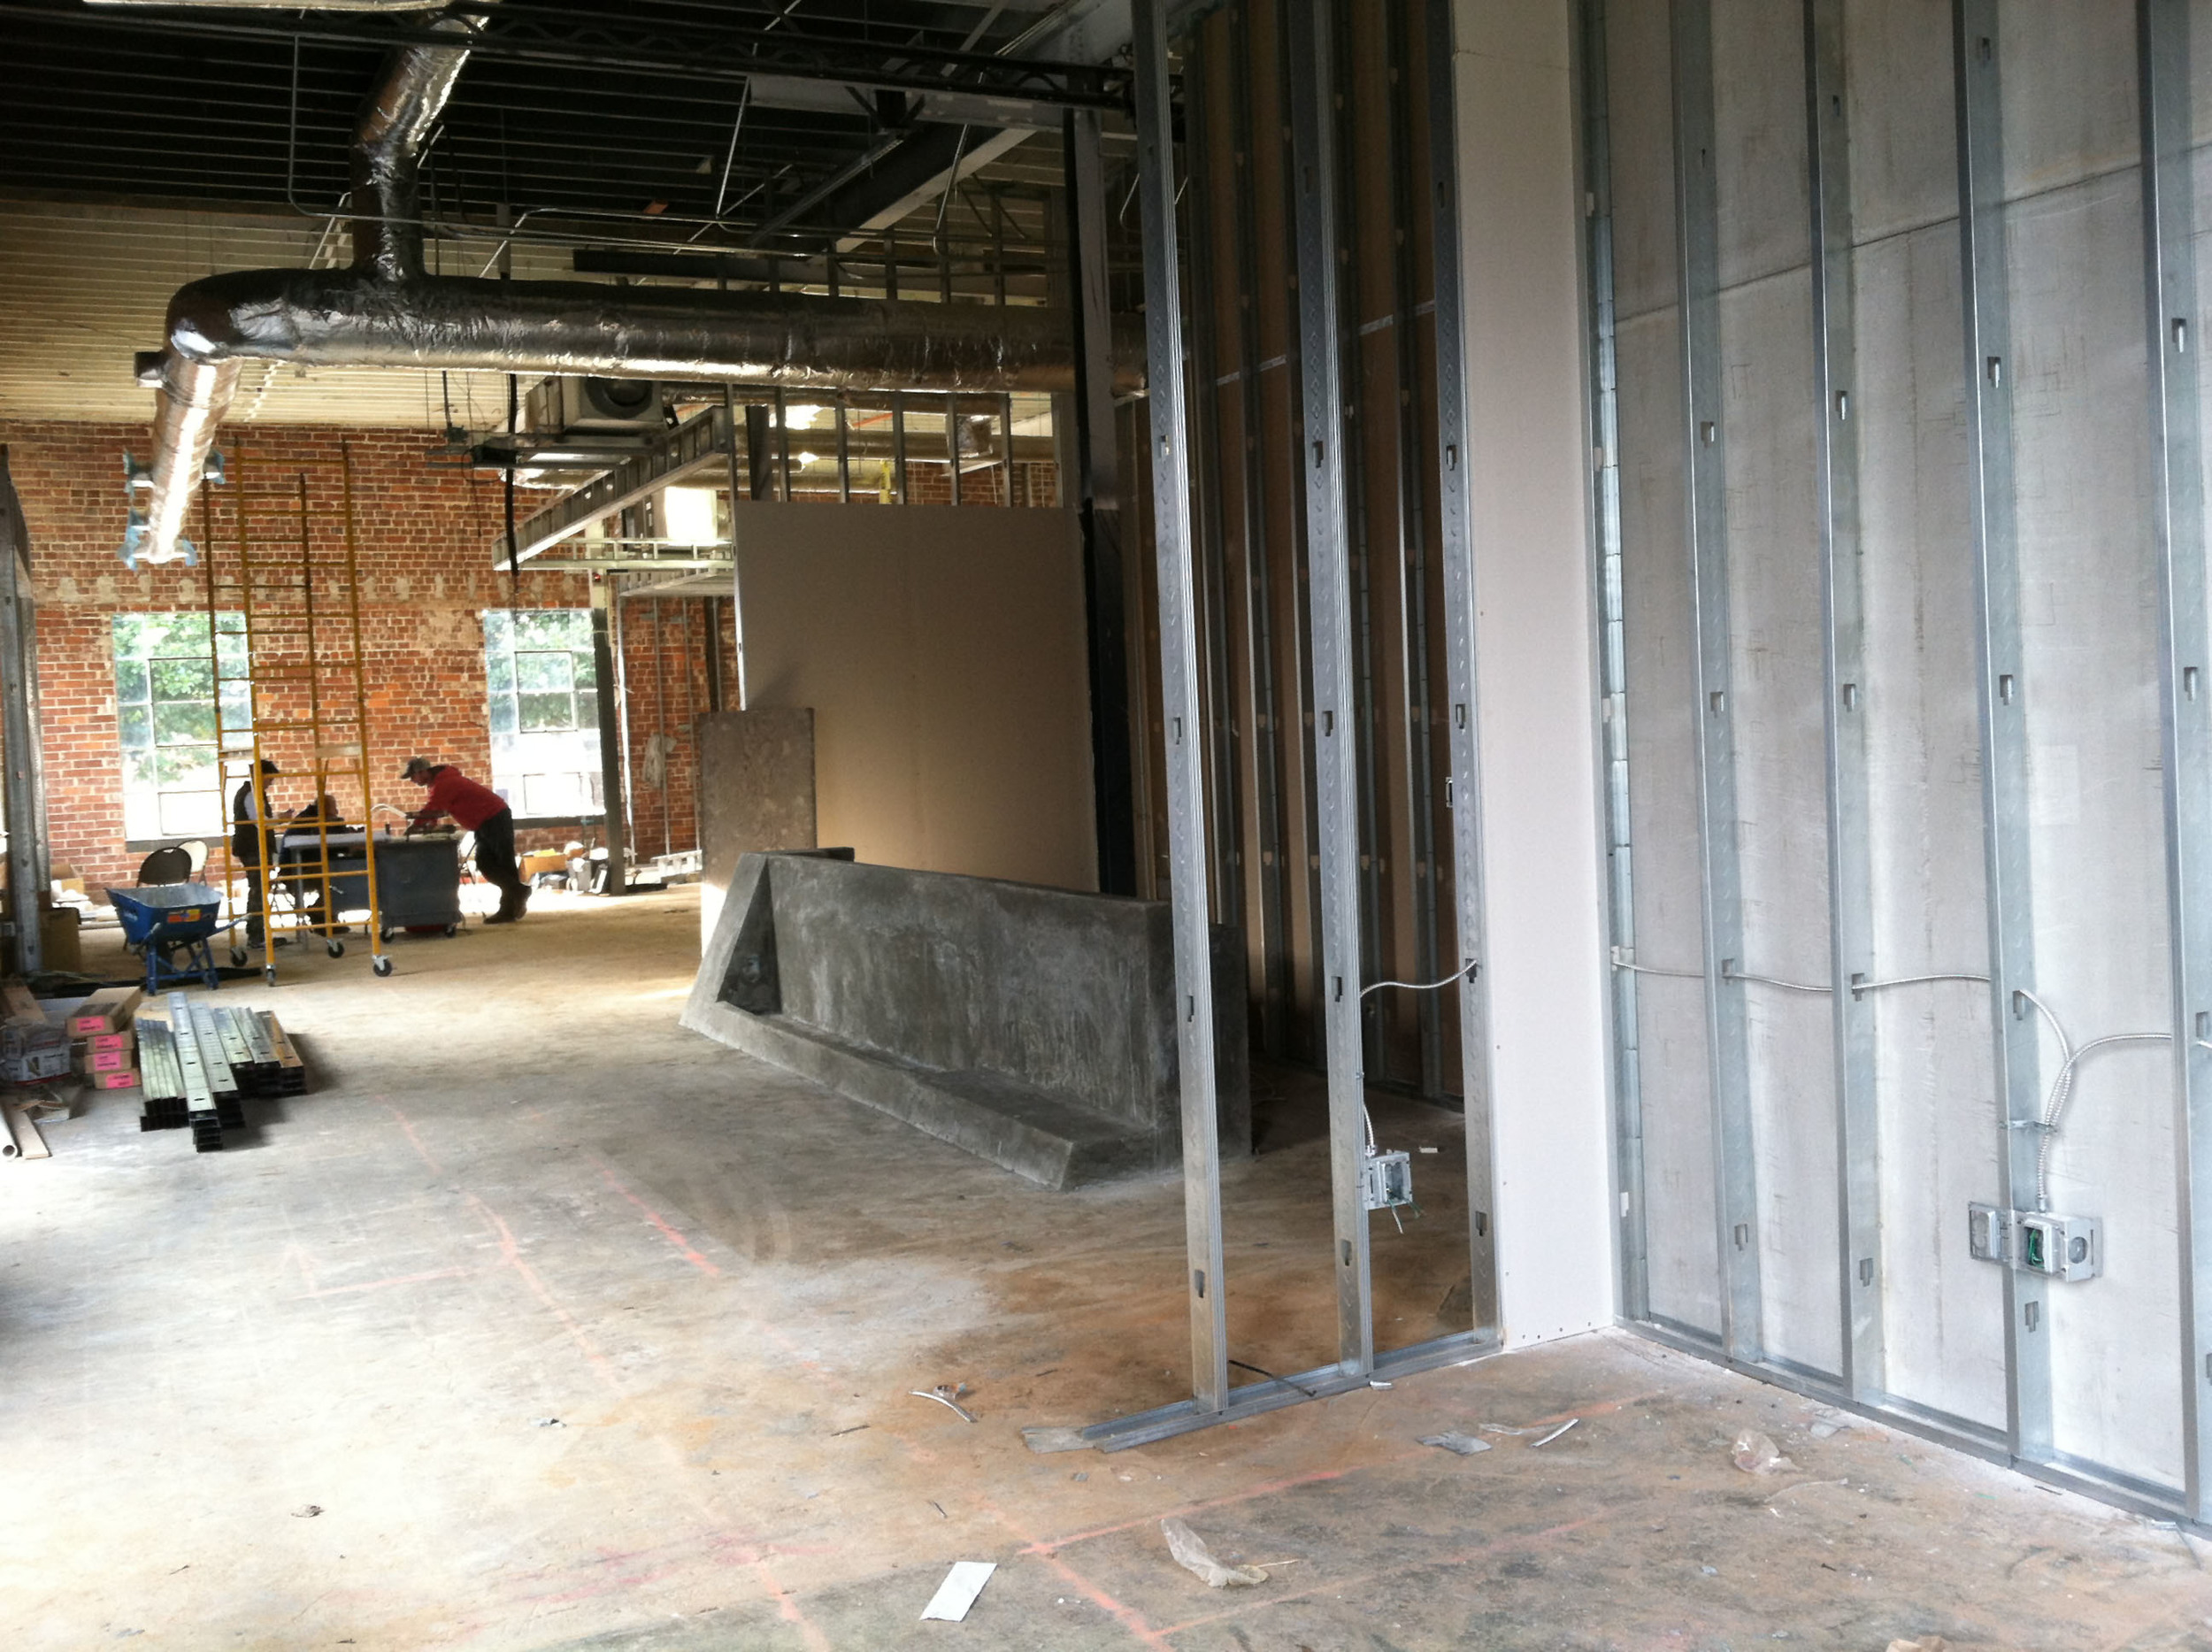 Entry Feature Wall under construction